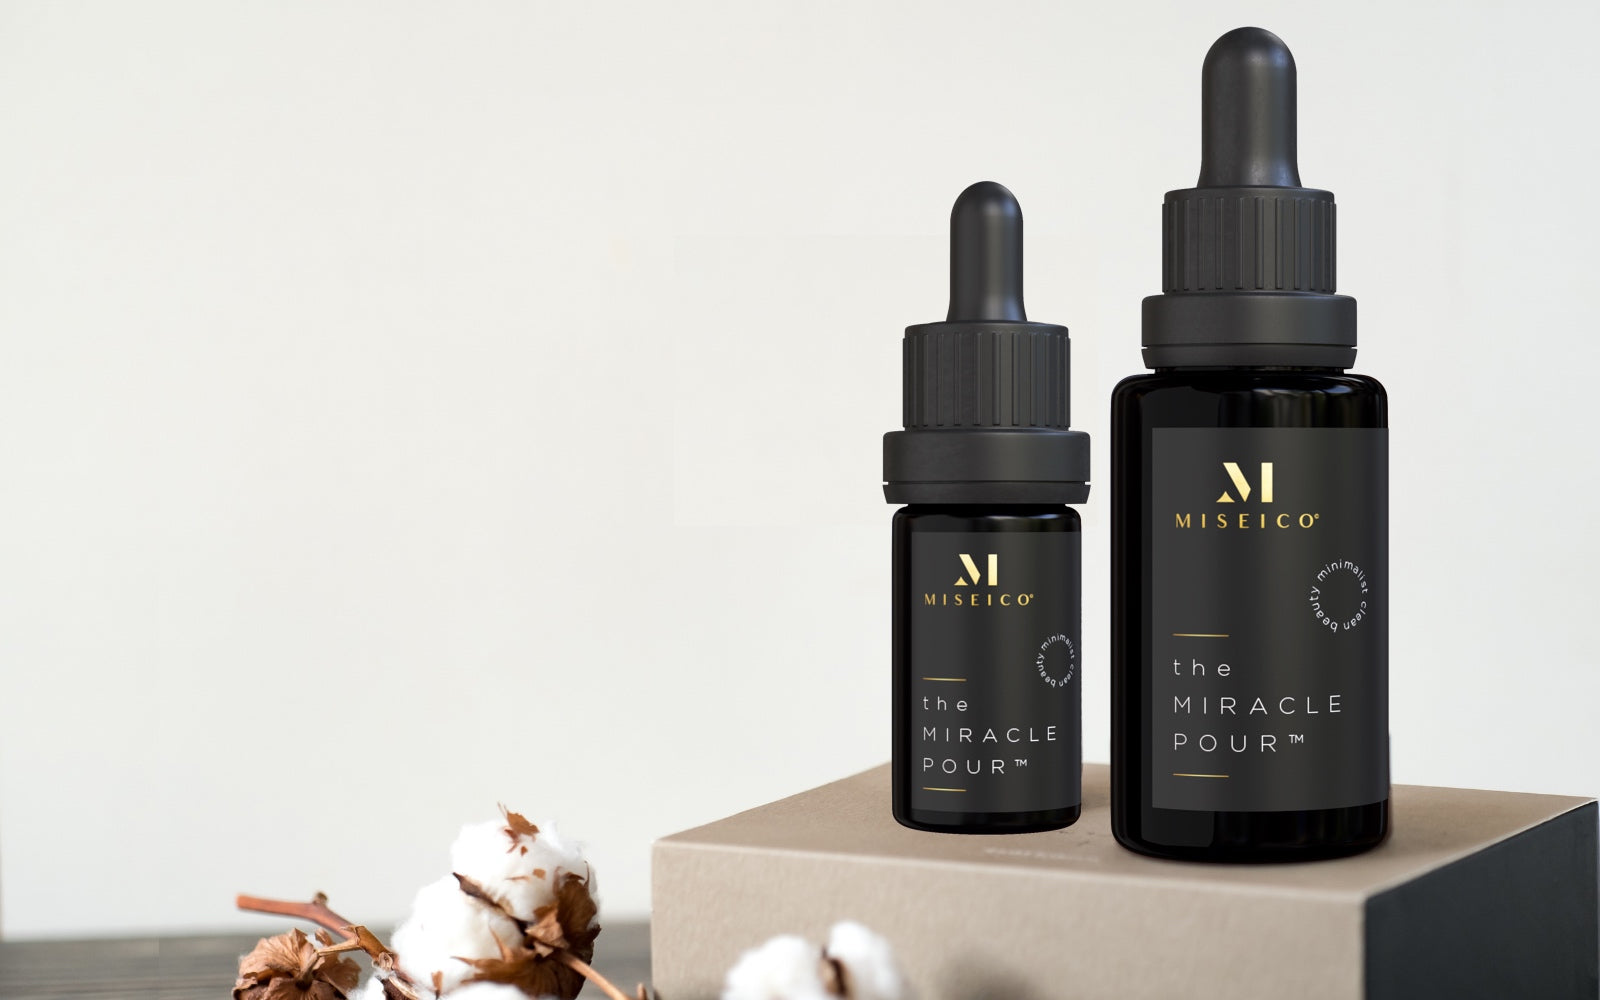 MISEICO Minimalist Clean Beauty | the MIRACLE POUR multi-active serum for all skin tones, skin types and gender | Inclusive Beauty | Sustainable Skincare